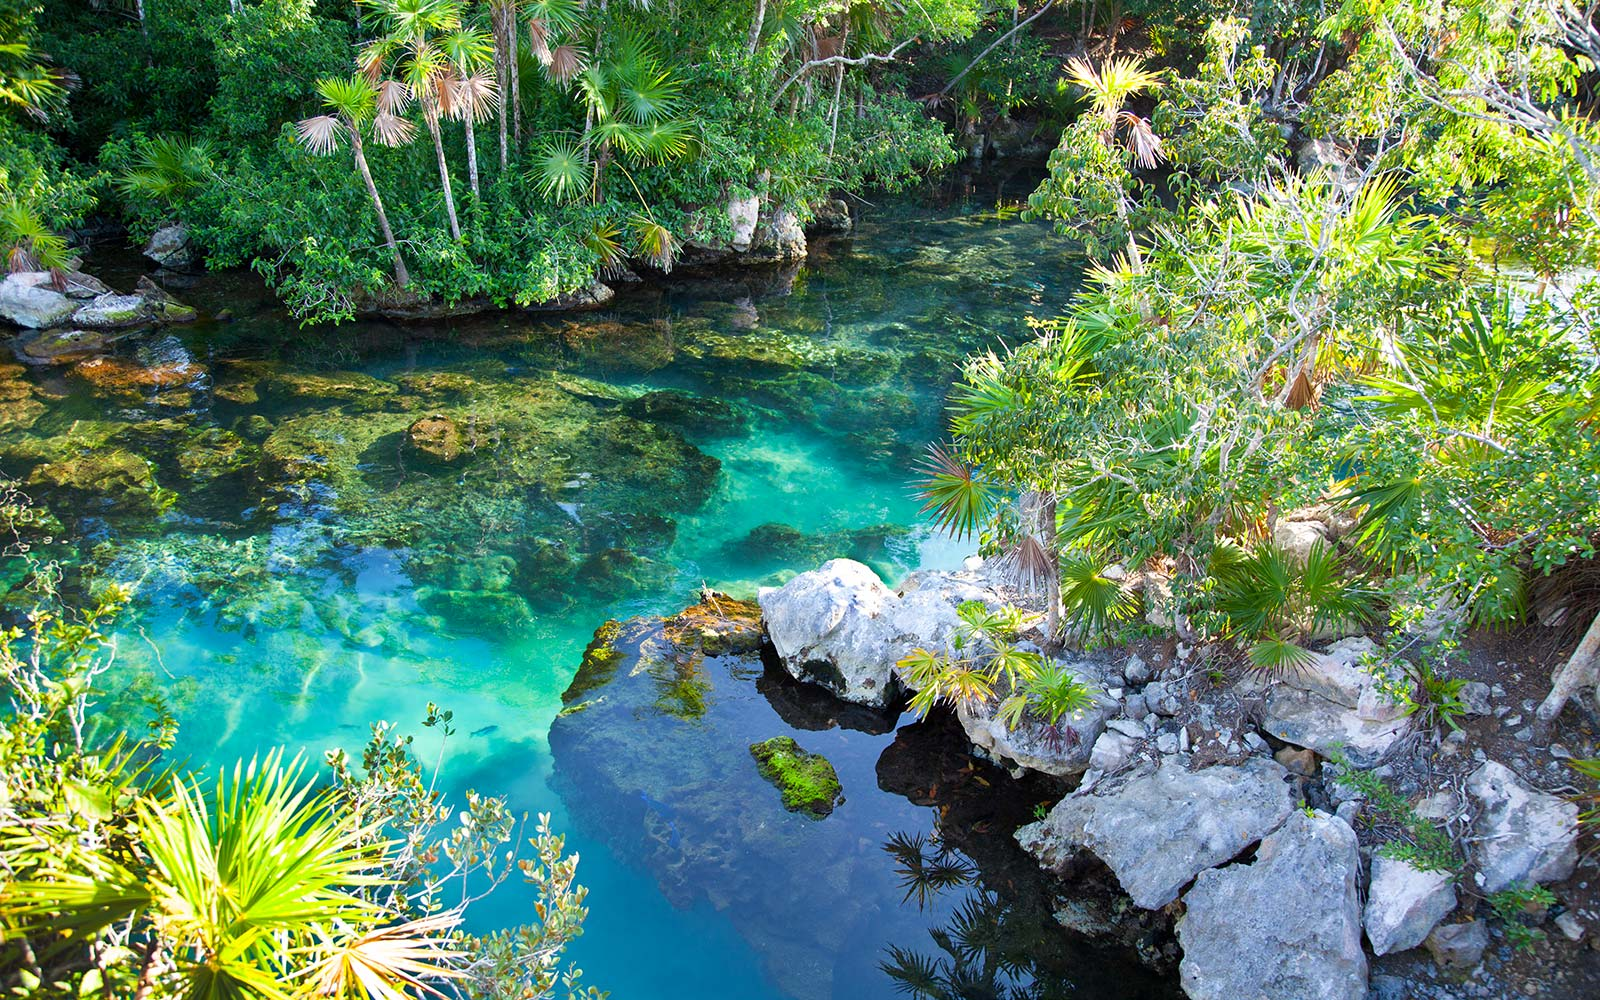 Cenote with beautiful turquoise water for snorkeling at Xel-Ha, Cancun Mexico rainforest Cara Delevingne Birthday